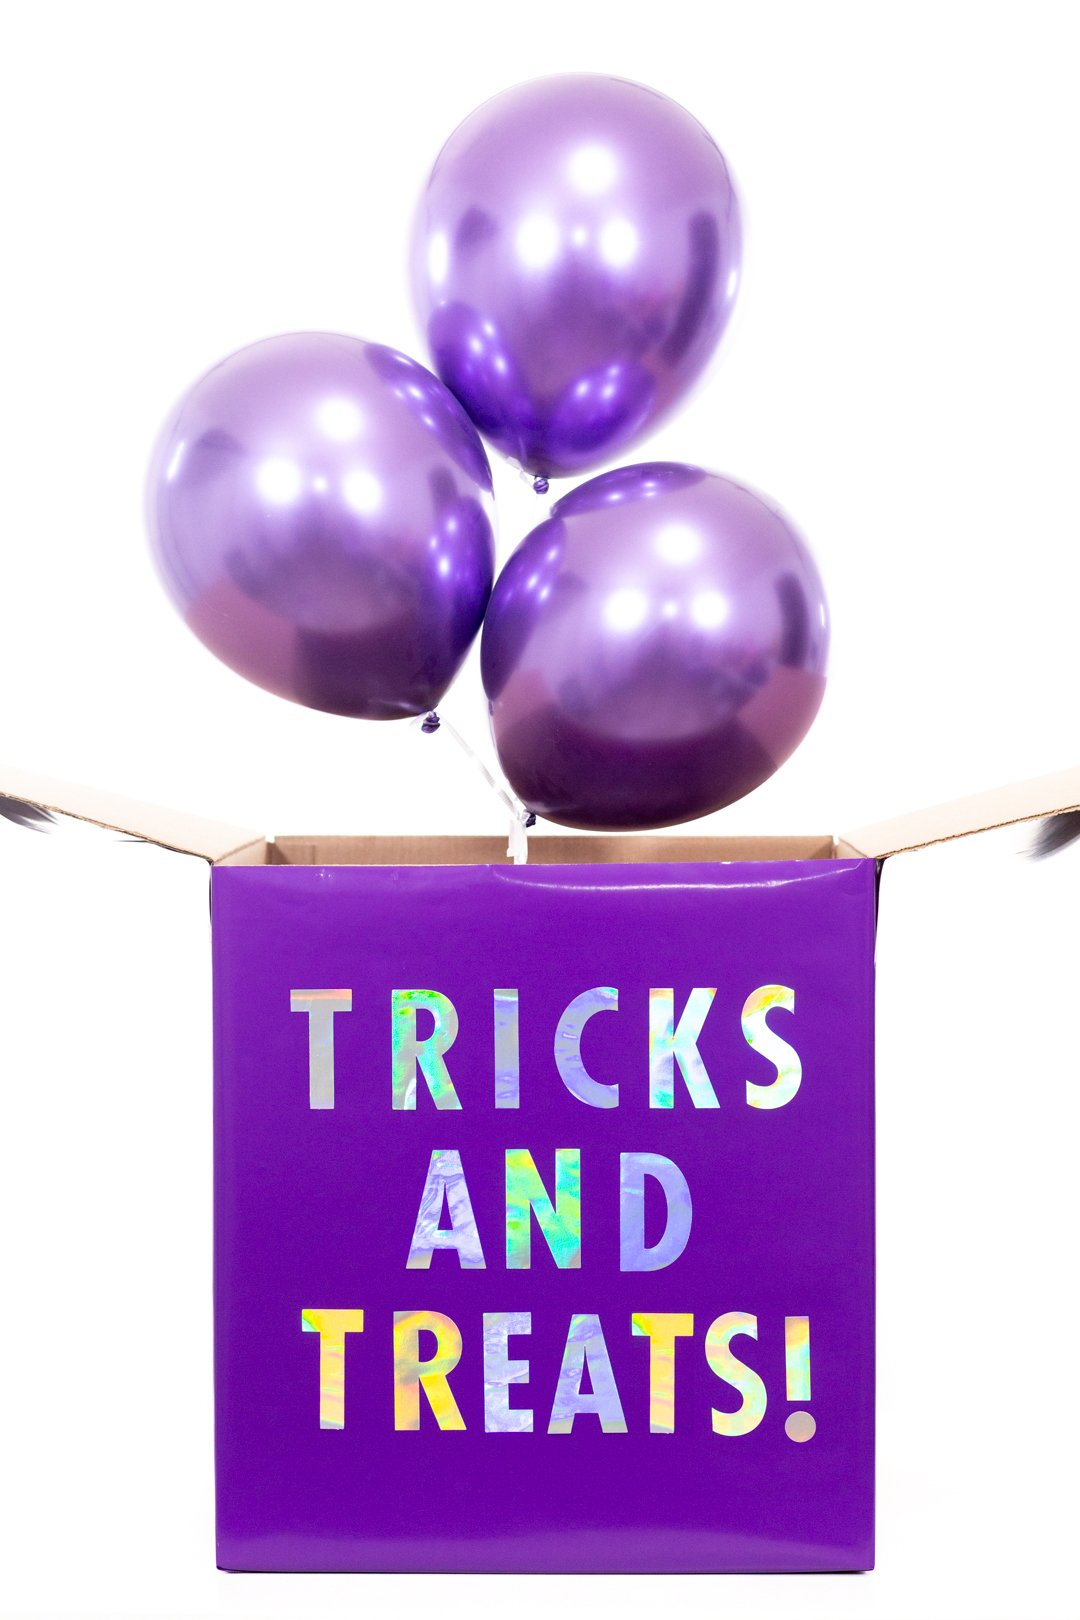 purple halloween diy gift box with metallic purple balloons coming out of it.